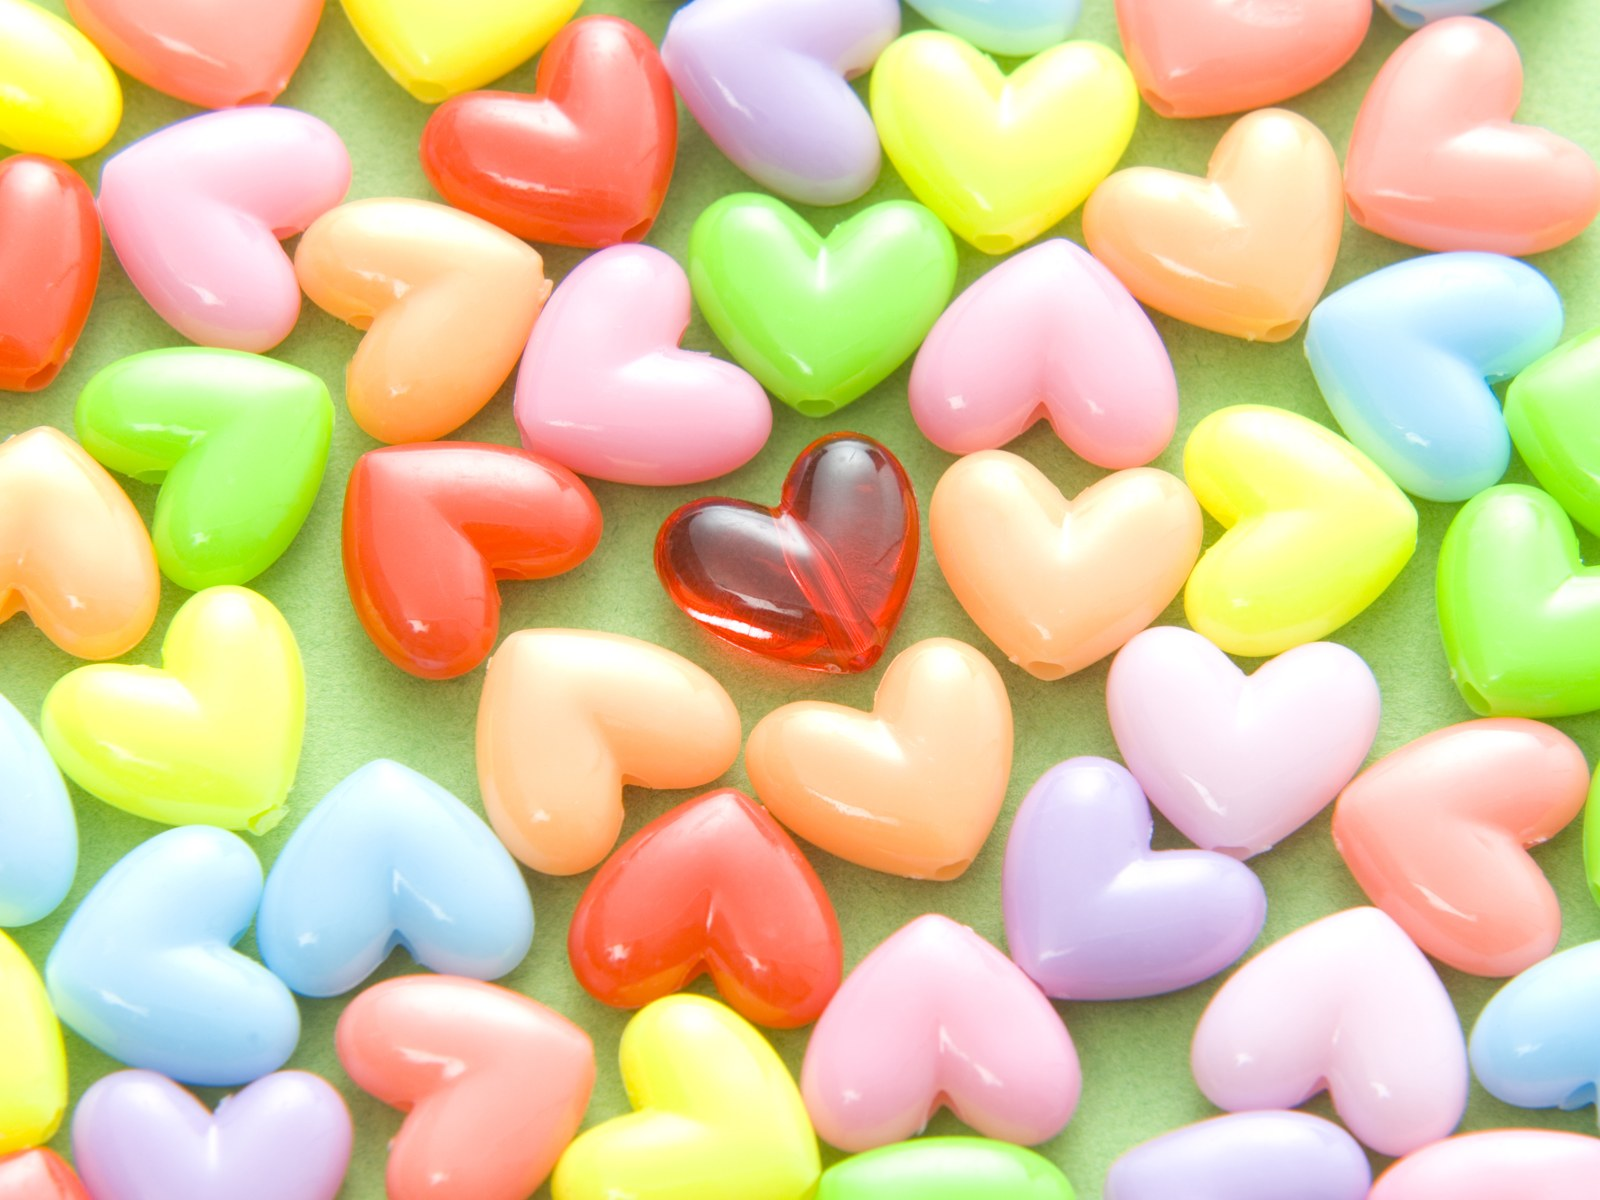 Valentines Candy Hearts 9 Hd Wallpaper